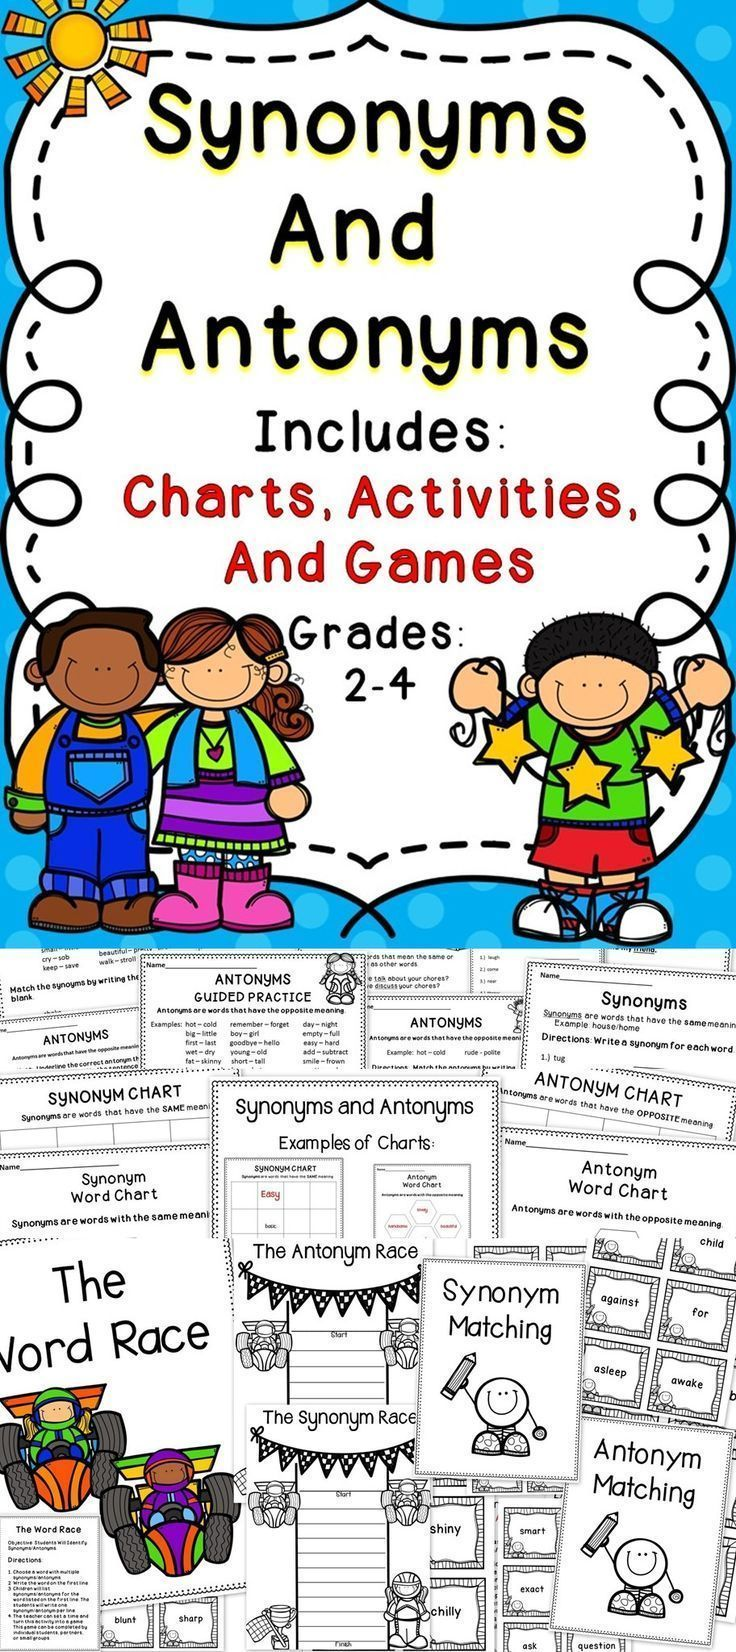 Synonyms and Antonyms   Reading skills, Common core standards and ...